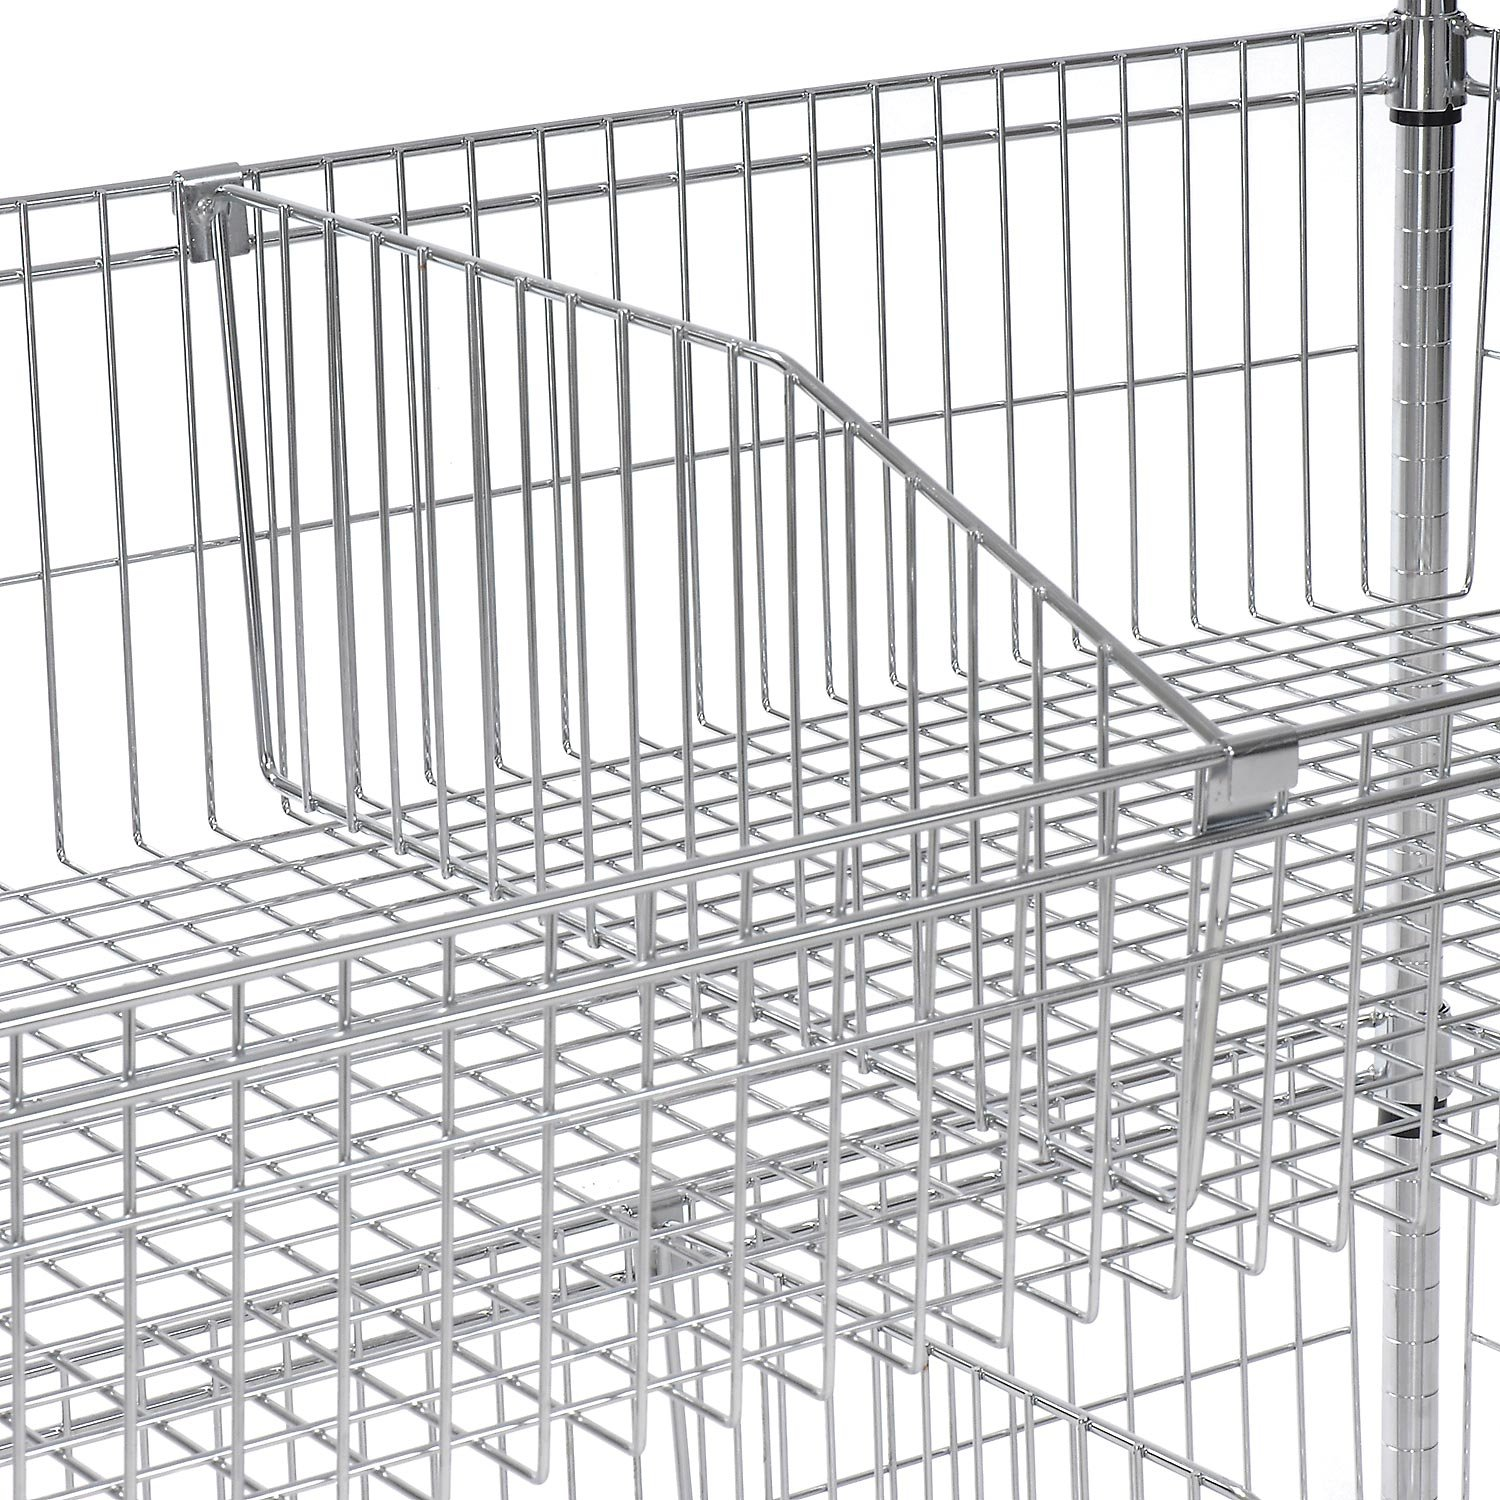 Optional Dividers for Wire Baskets Size: 1'' H x 18'' W x 11'' D